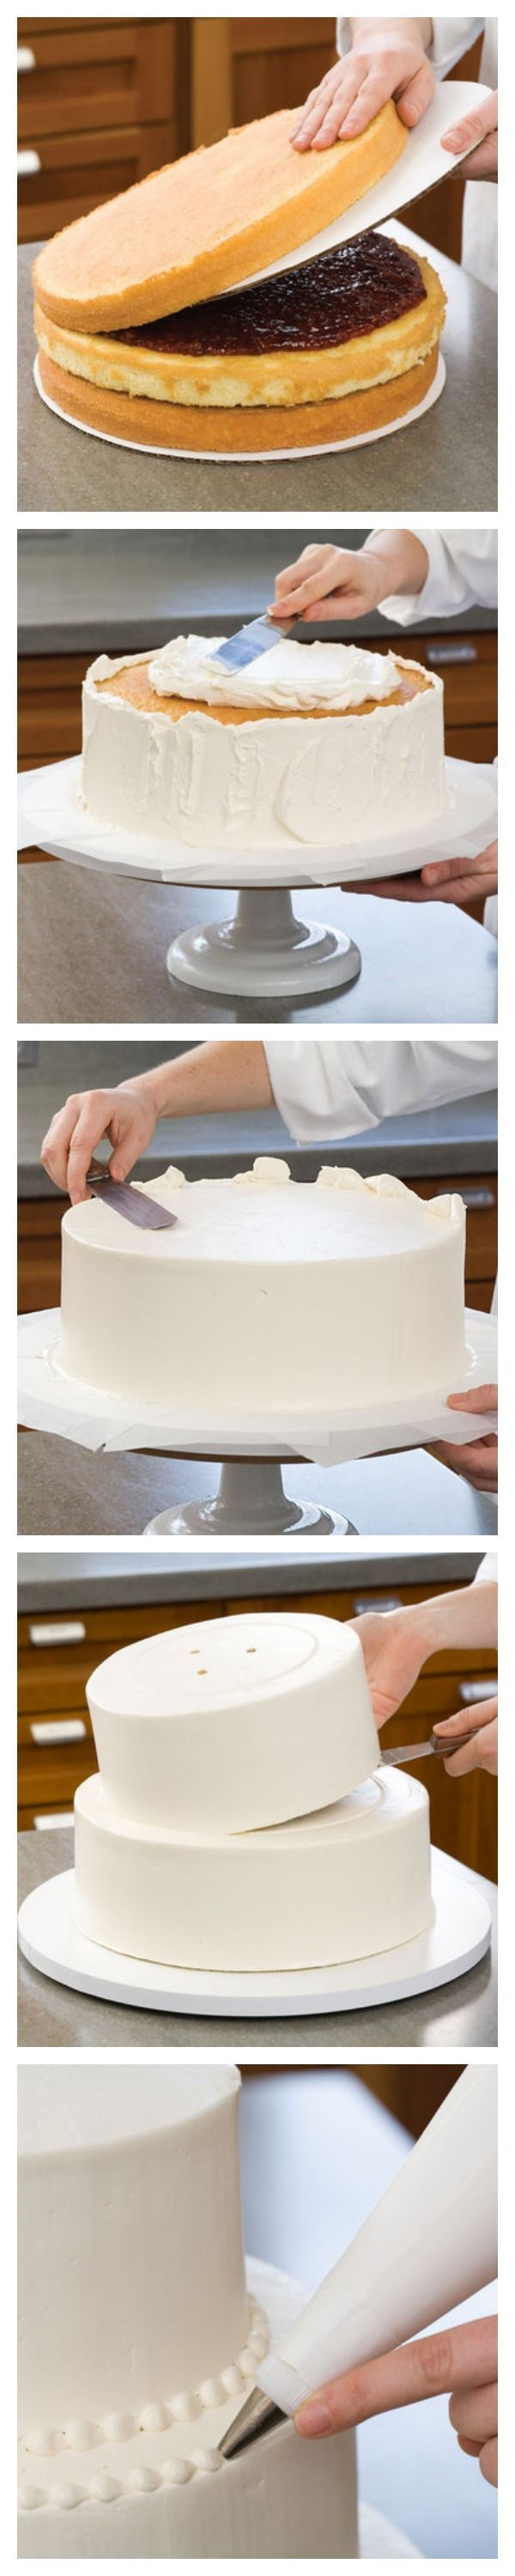 We've Got the Secrets to Making a DIY Homemade Wedding Cake or any 3 tiered cake #weddingcakes